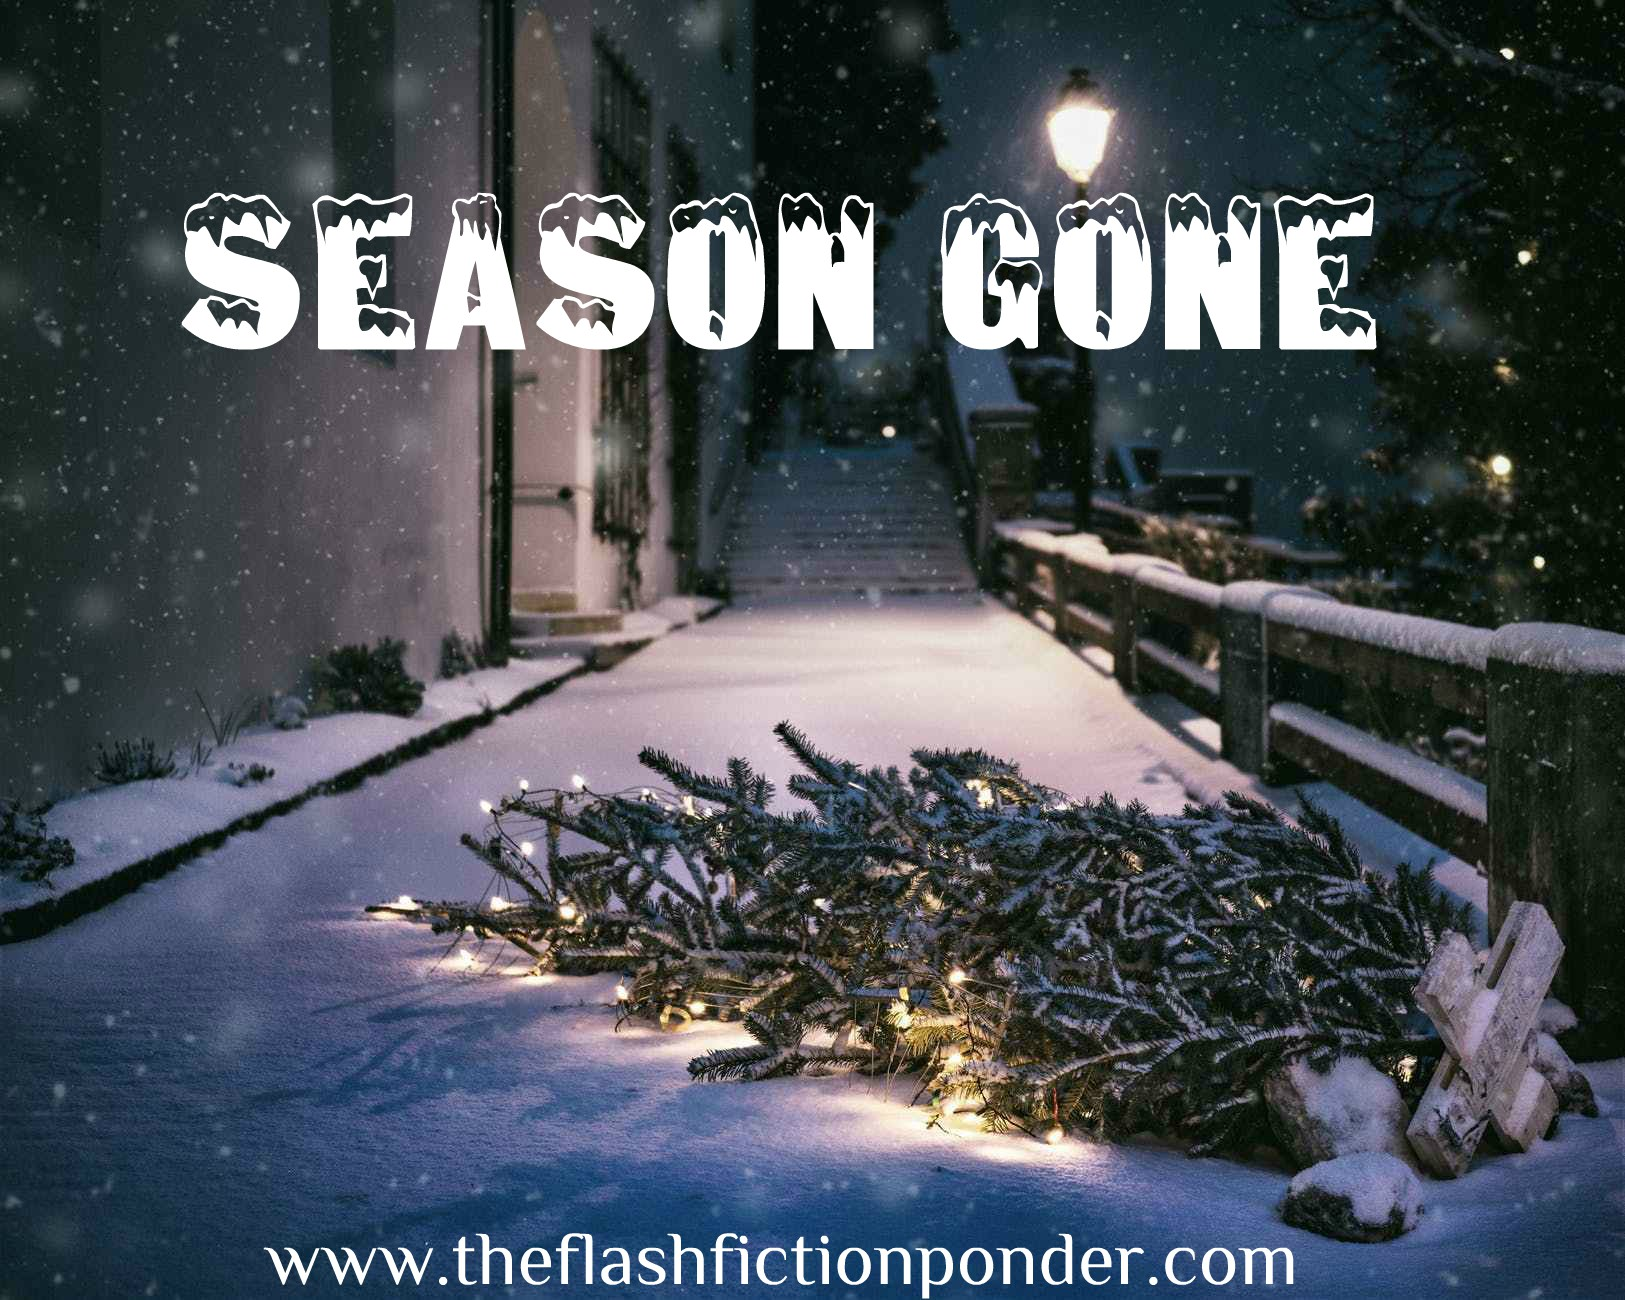 Dead Christmas tree, image for the short story 'Season Gone' by The Flash Fiction Ponder.